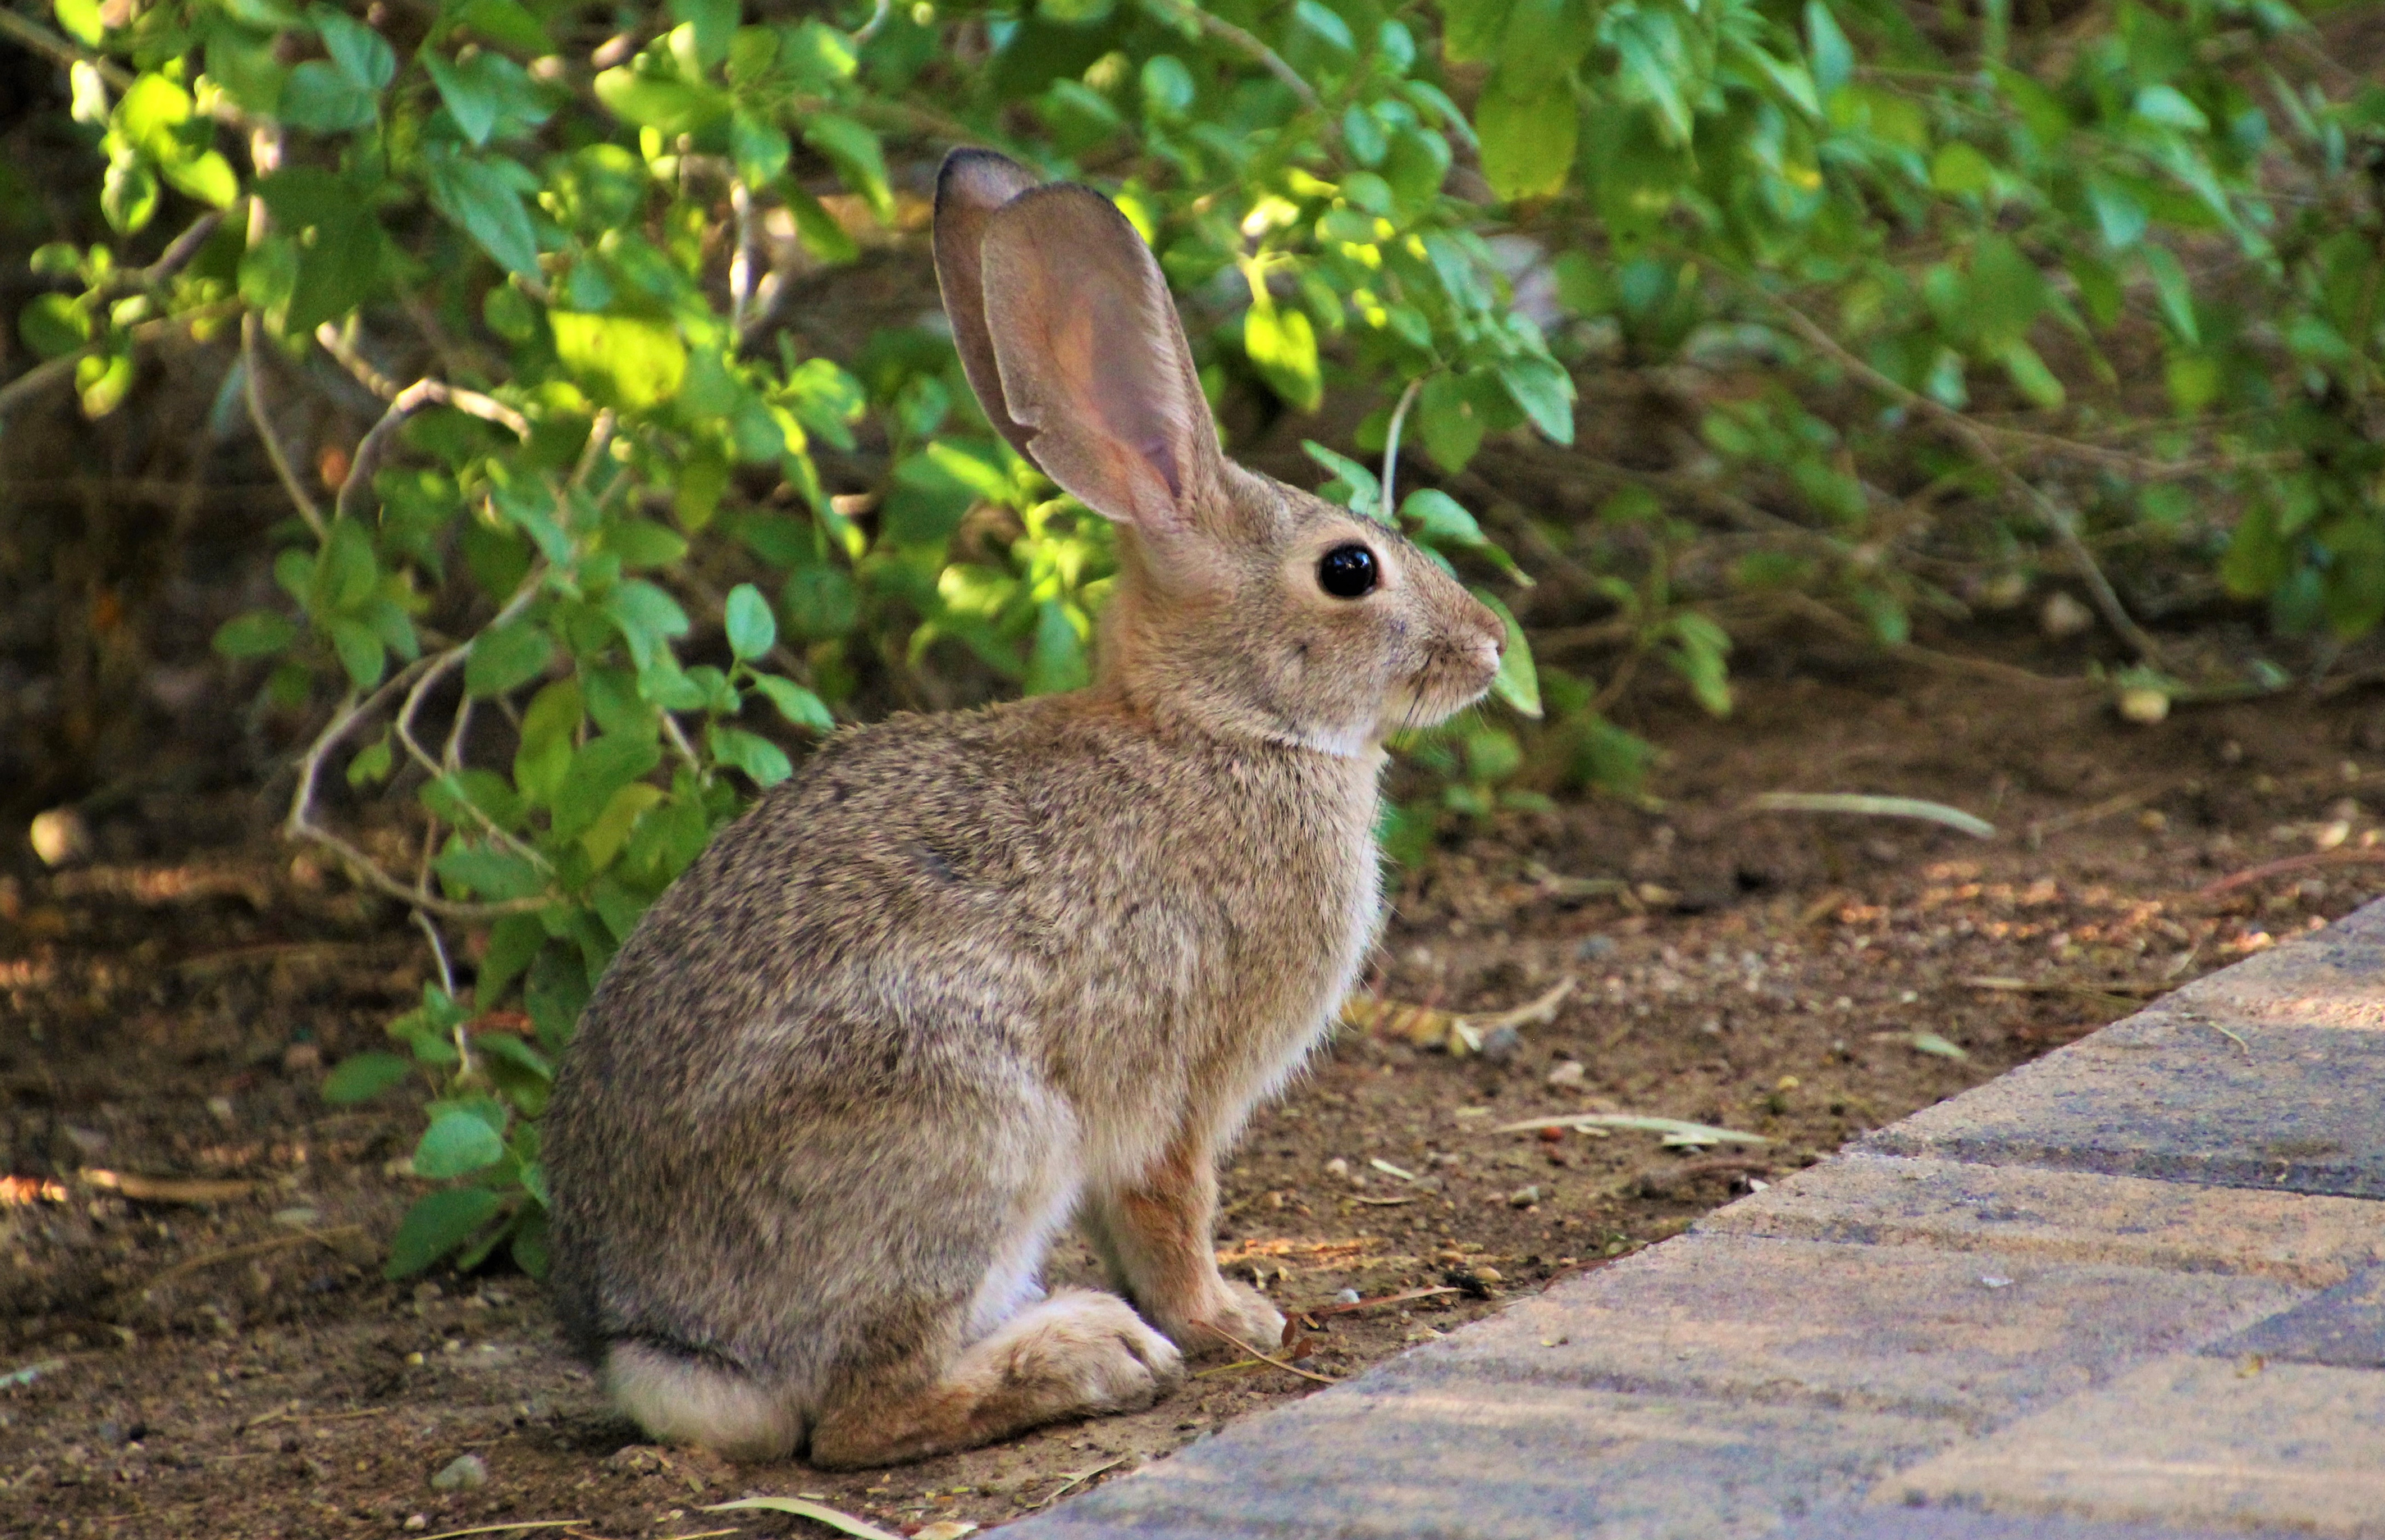 66974 download wallpaper Animals, Rabbit, Animal, Fluffy, Profile, Sight, Opinion screensavers and pictures for free